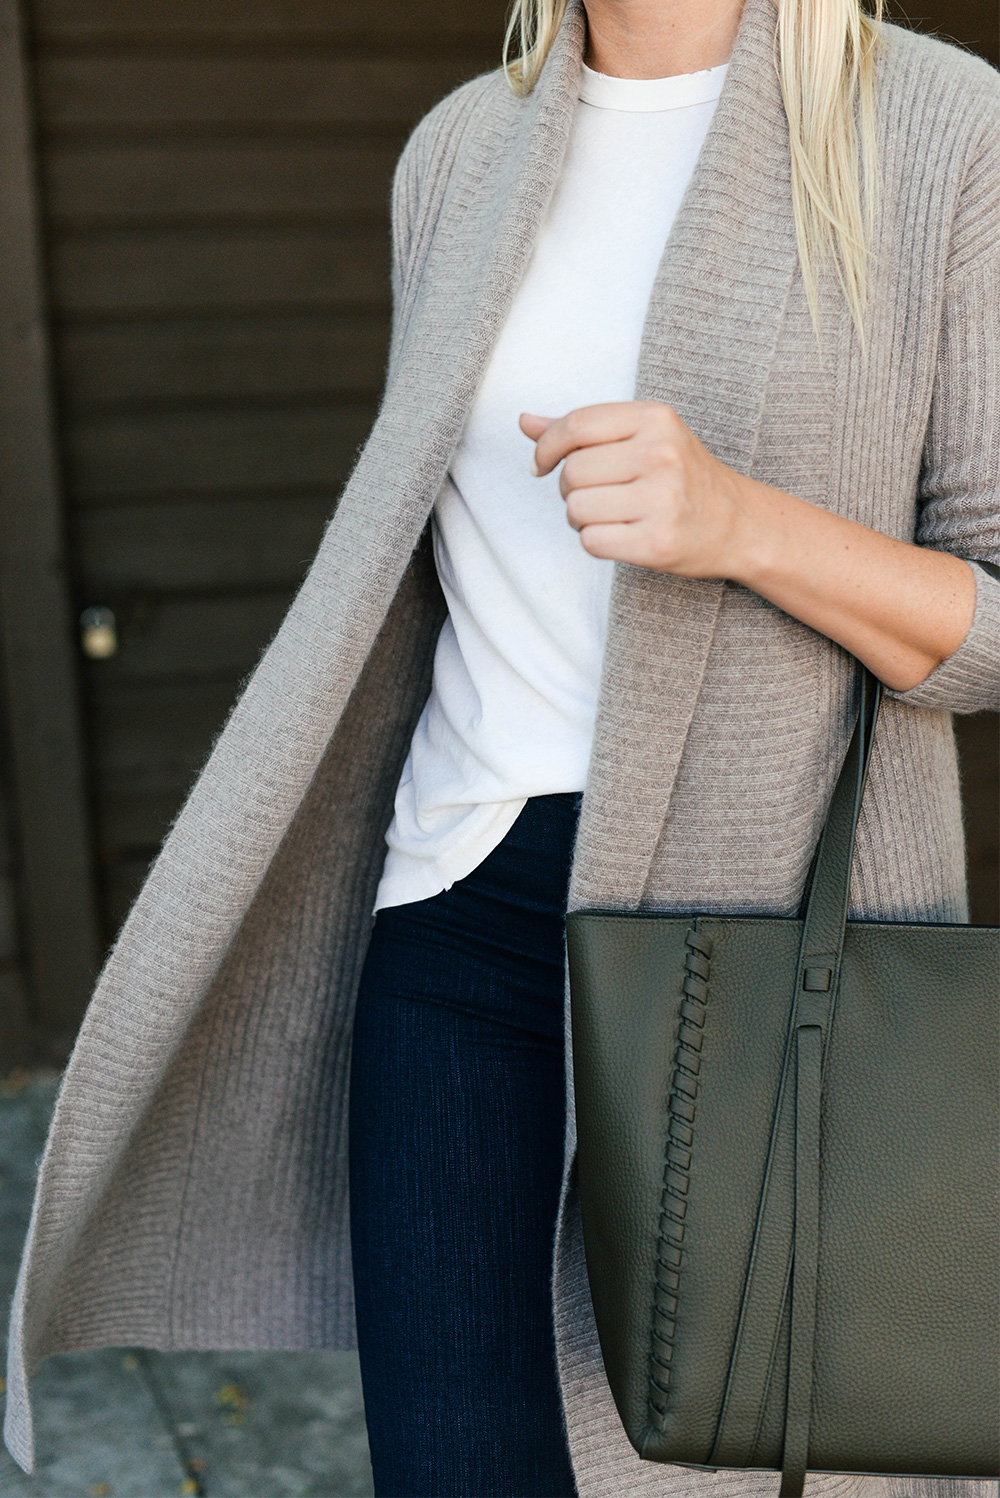 All Saints Leather Tote, Nordstrom Anniversary Sale | The Style Scribe